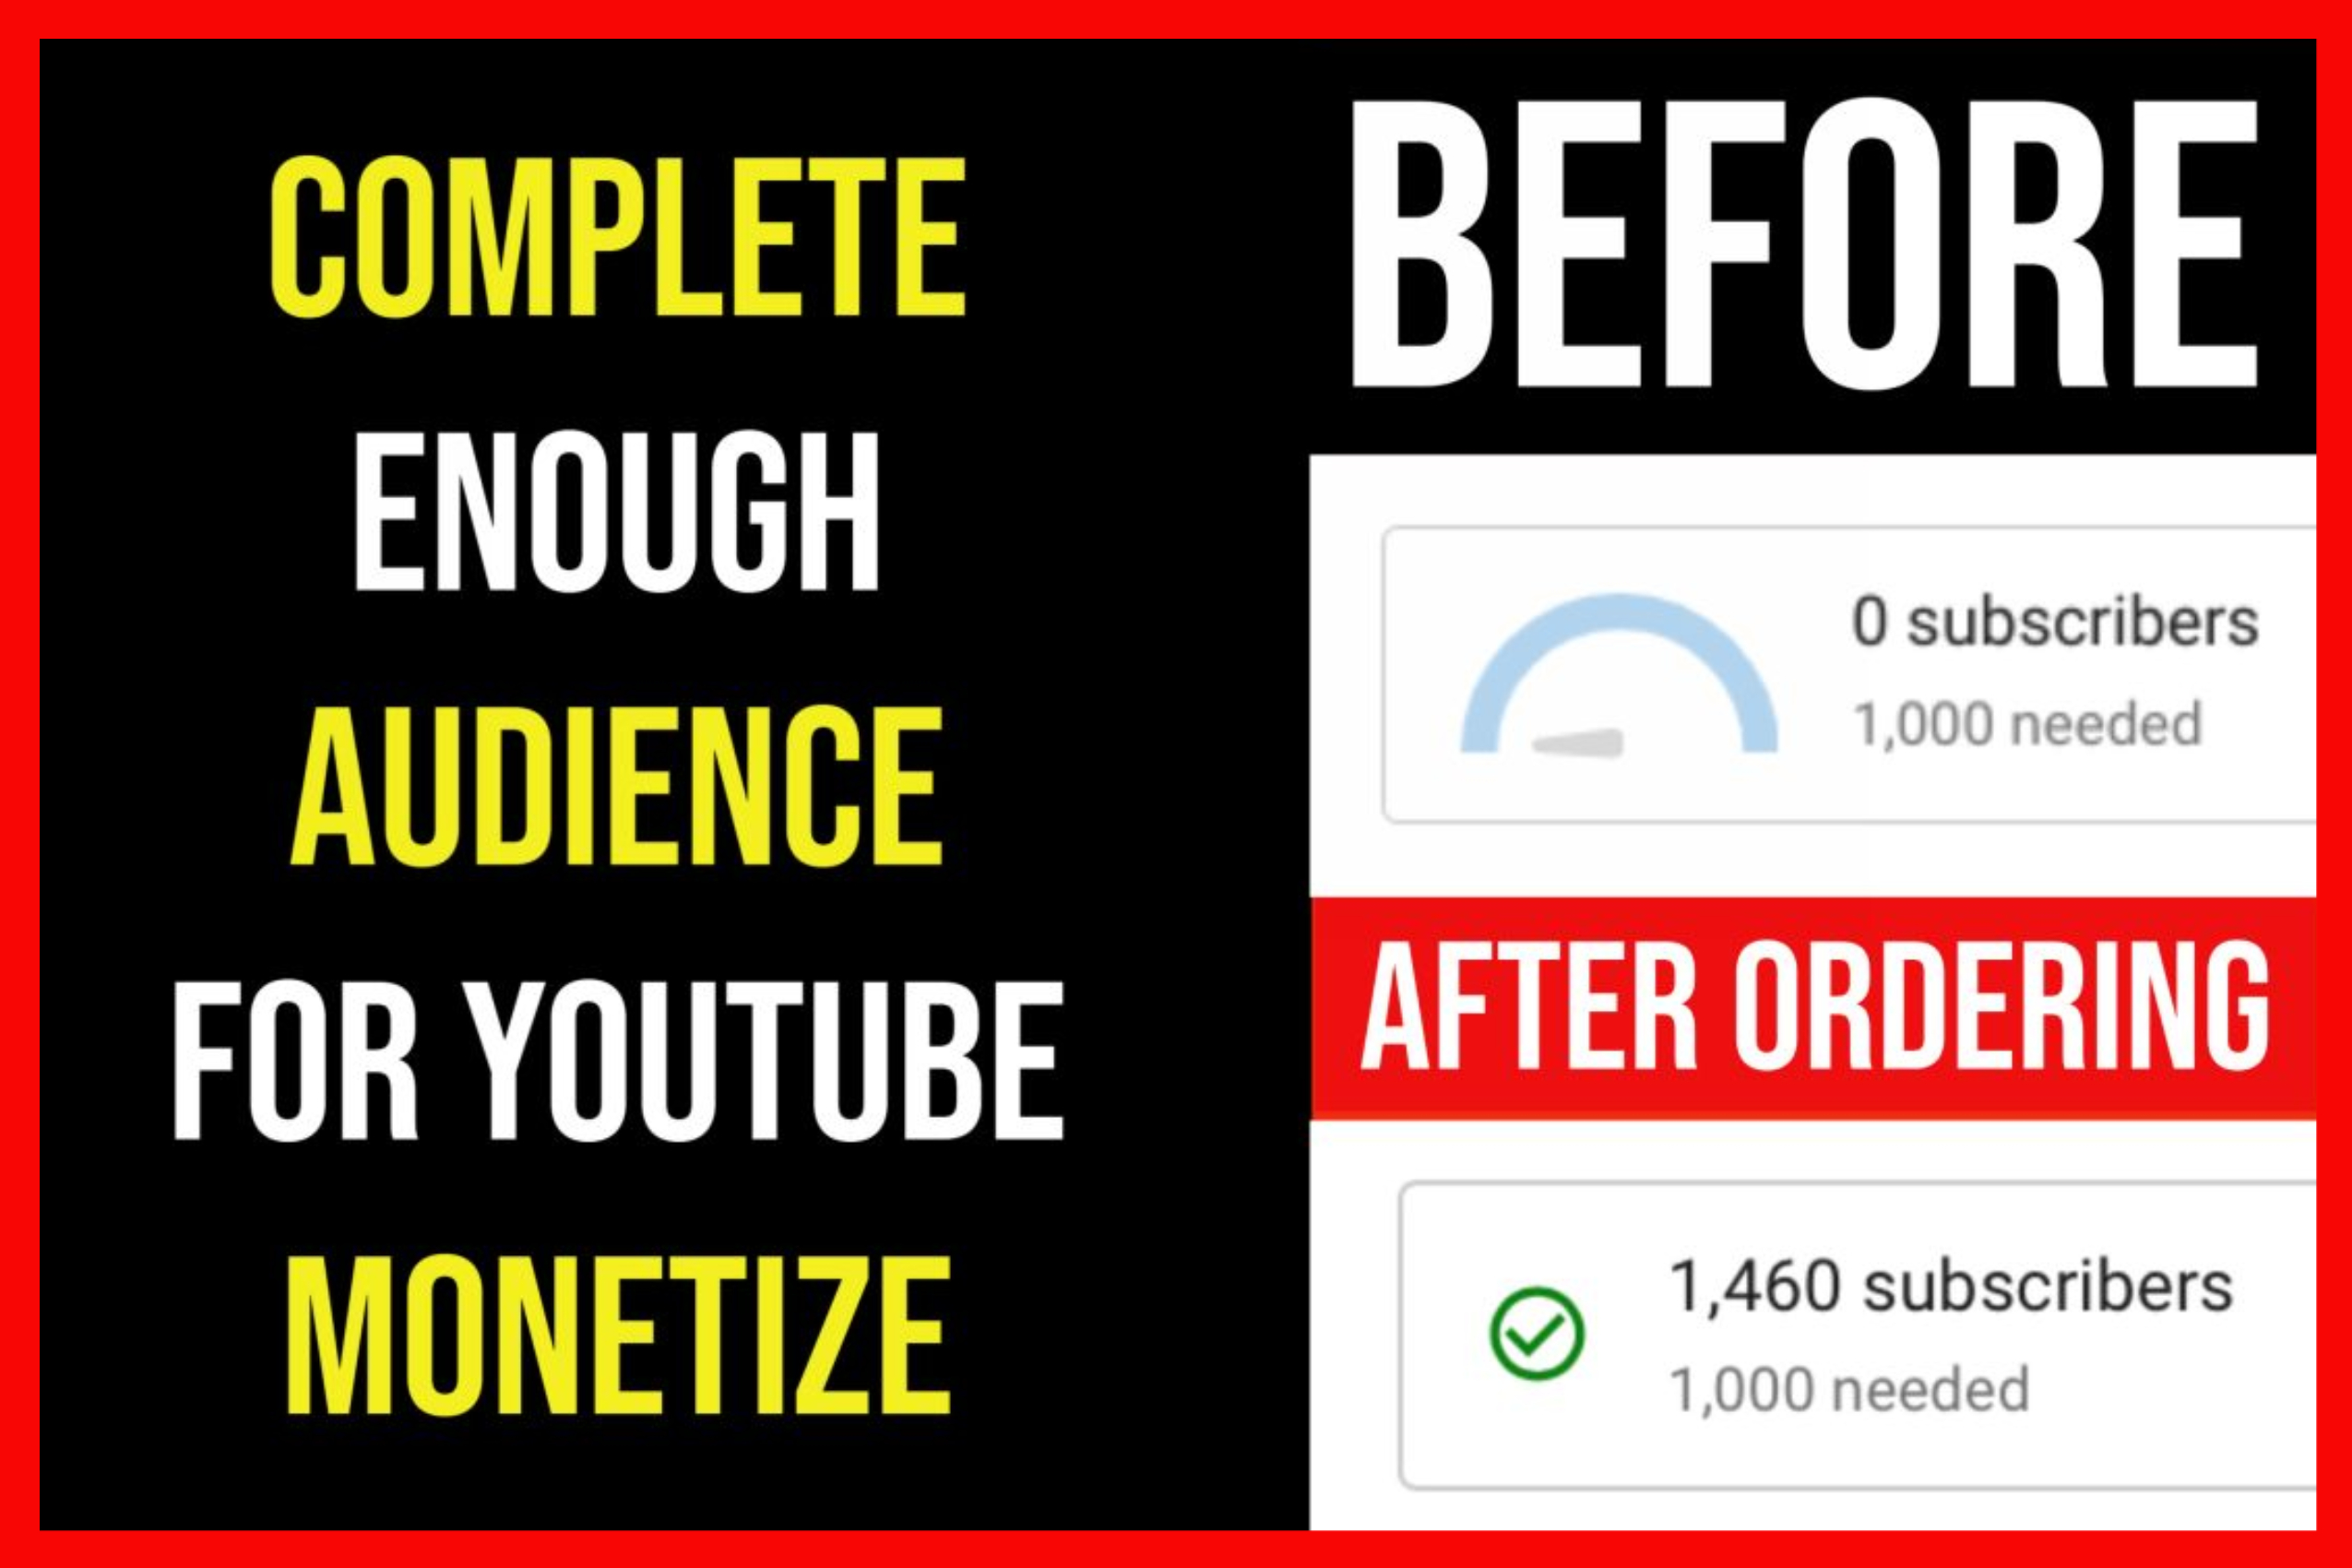 Get Complete YouTube Requirements For Enable Monetize